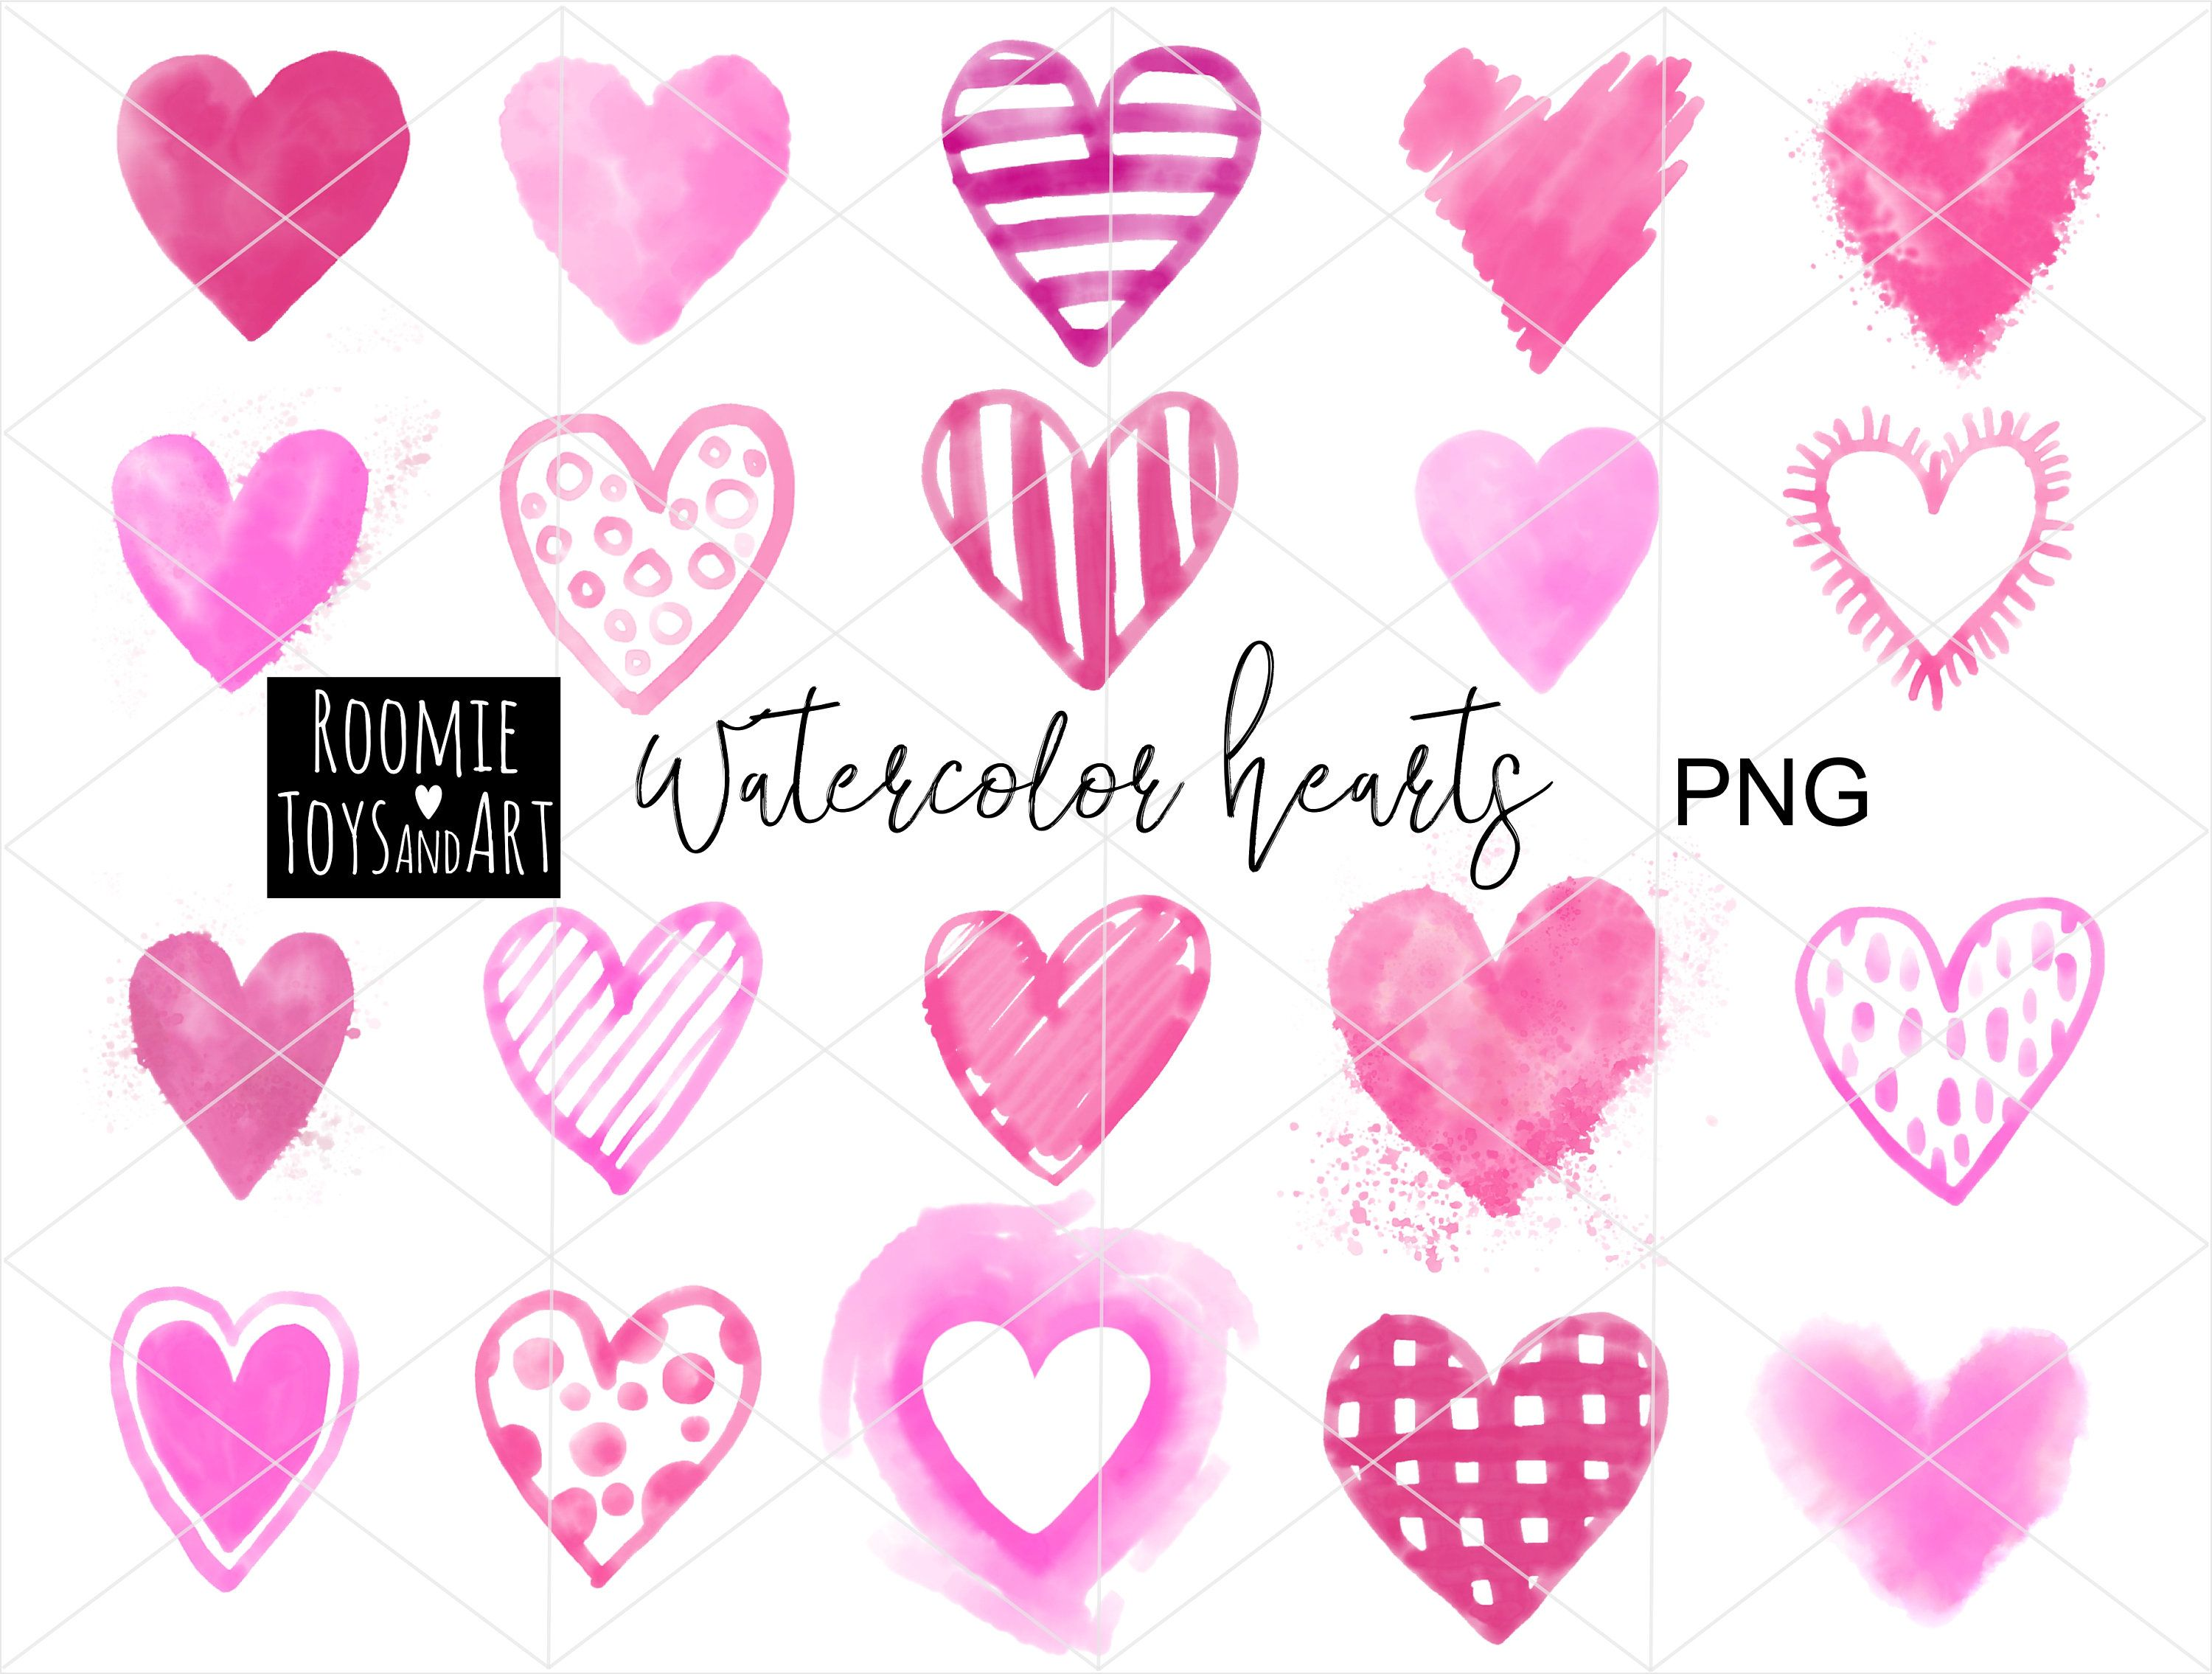 20 Watercolor Heart Png Watercolor Valentine Pink Hearts Png Etsy